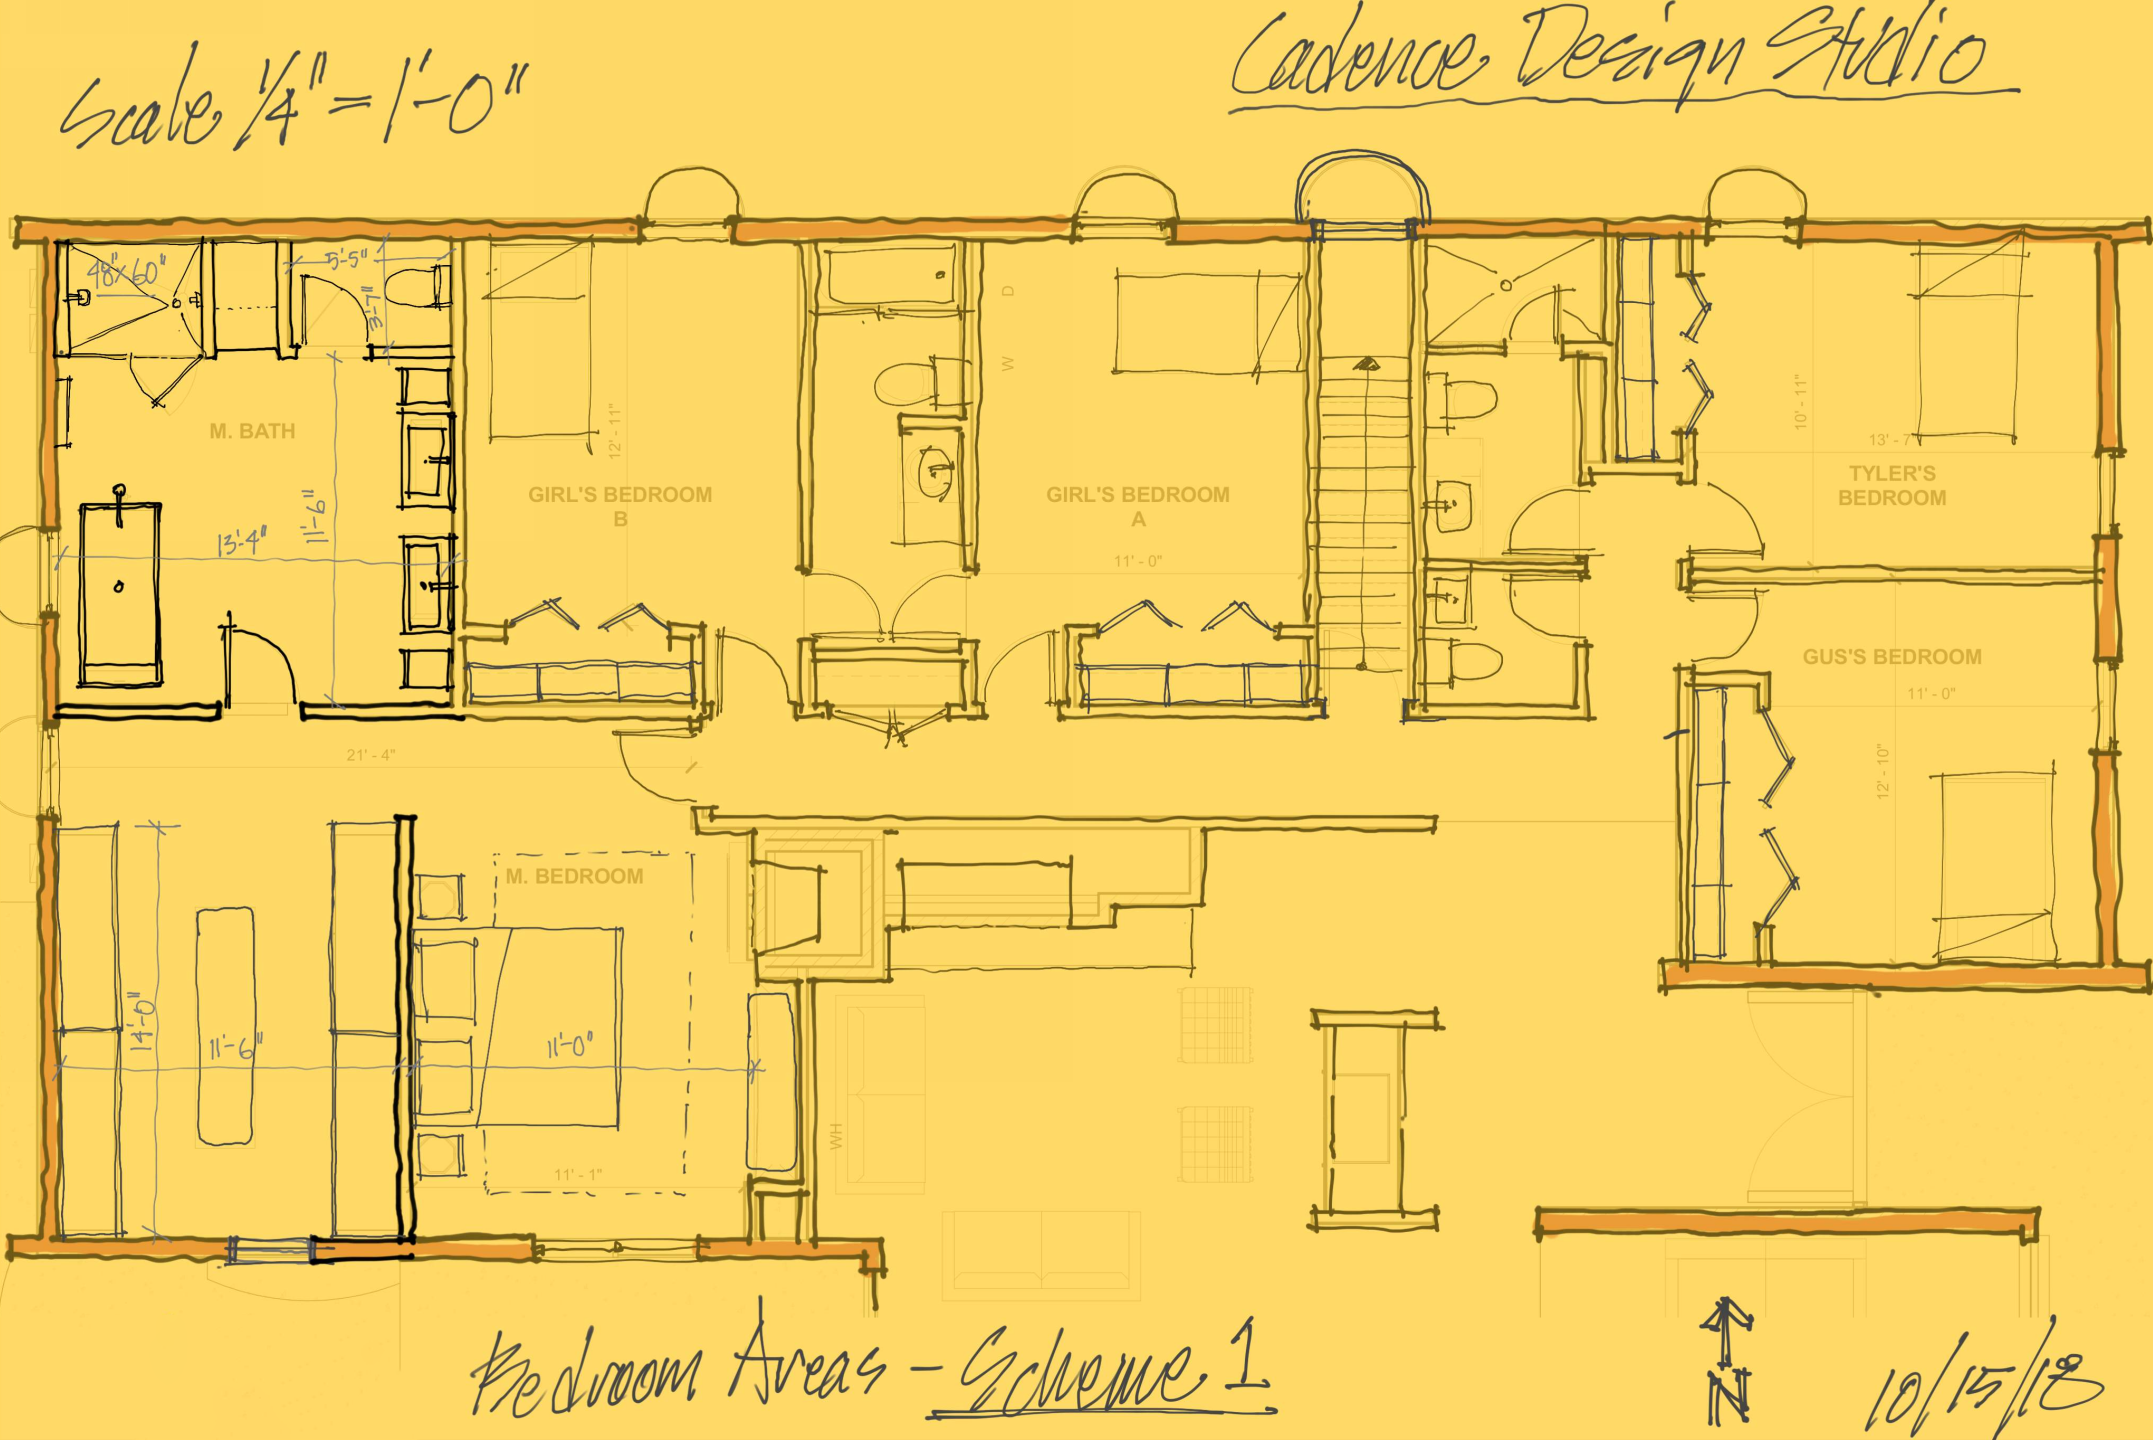 Wellshire Schematic Design Plan Sketche Bedroom Areas Scheme 1.png